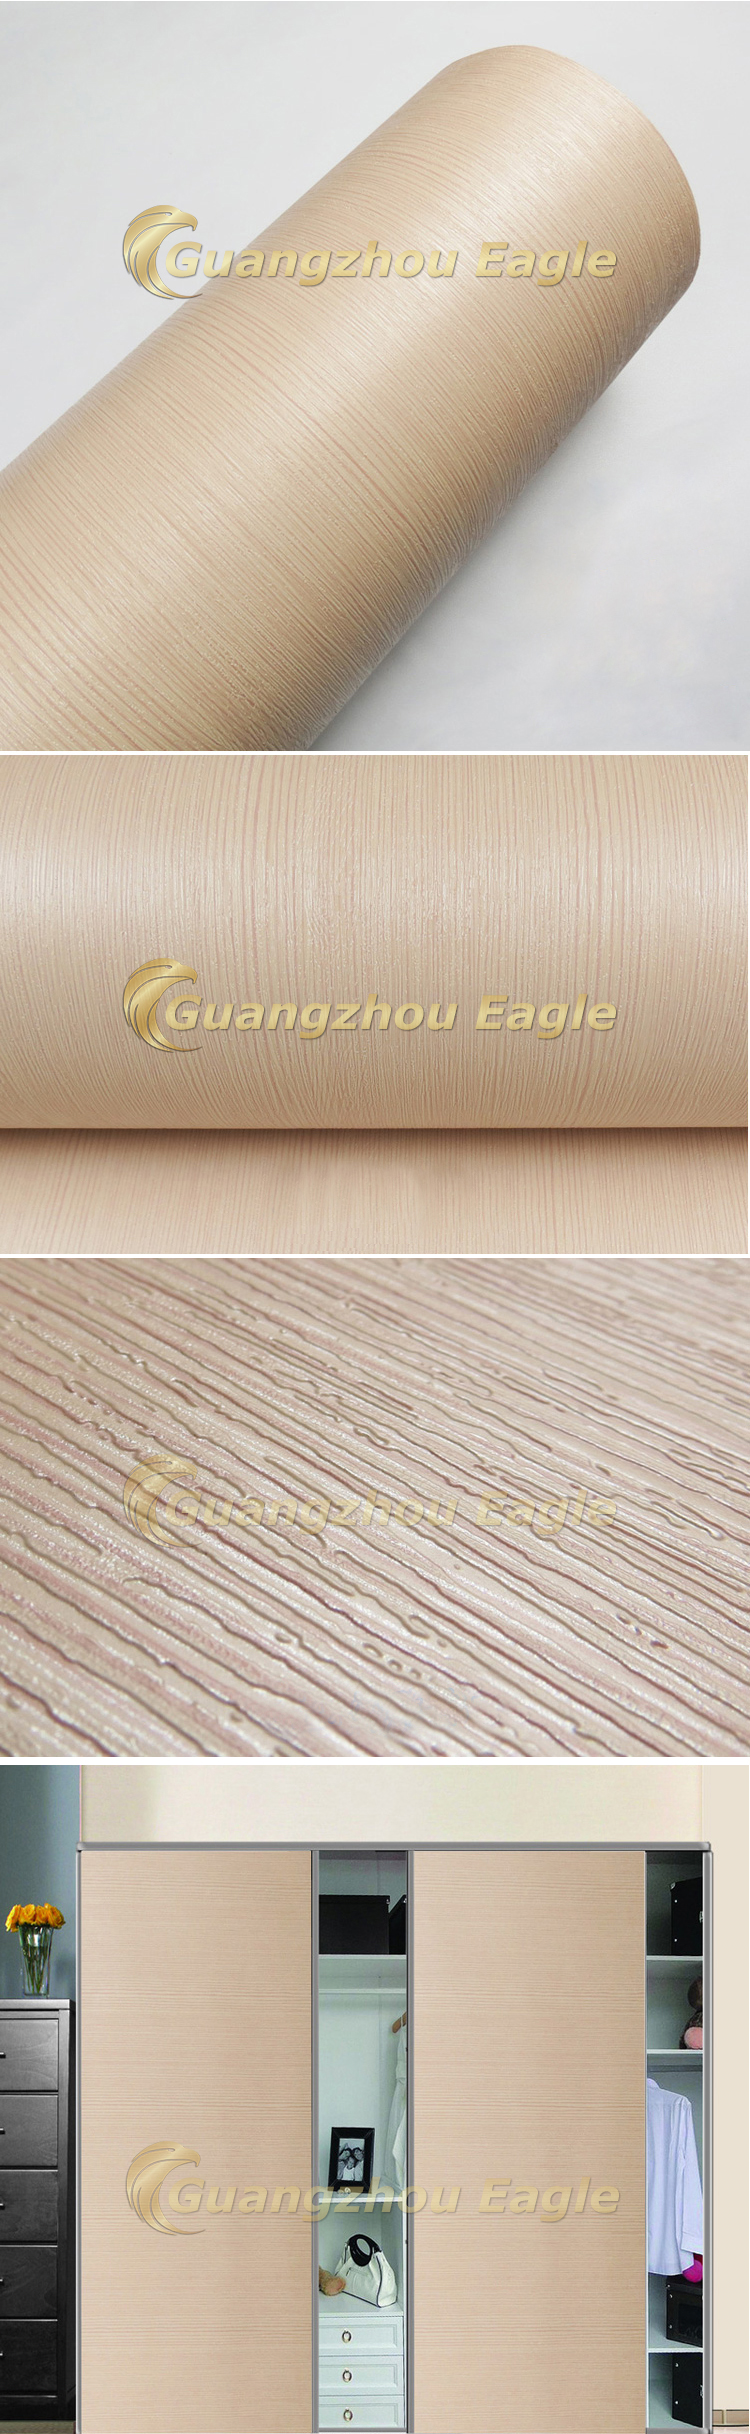 Texture Laminate Kitchen Cabinet Wrap Self Adhesive Wallpaper Wall Paper Furniture Sticker Vinyl Wood Grain PVC Film For Sale